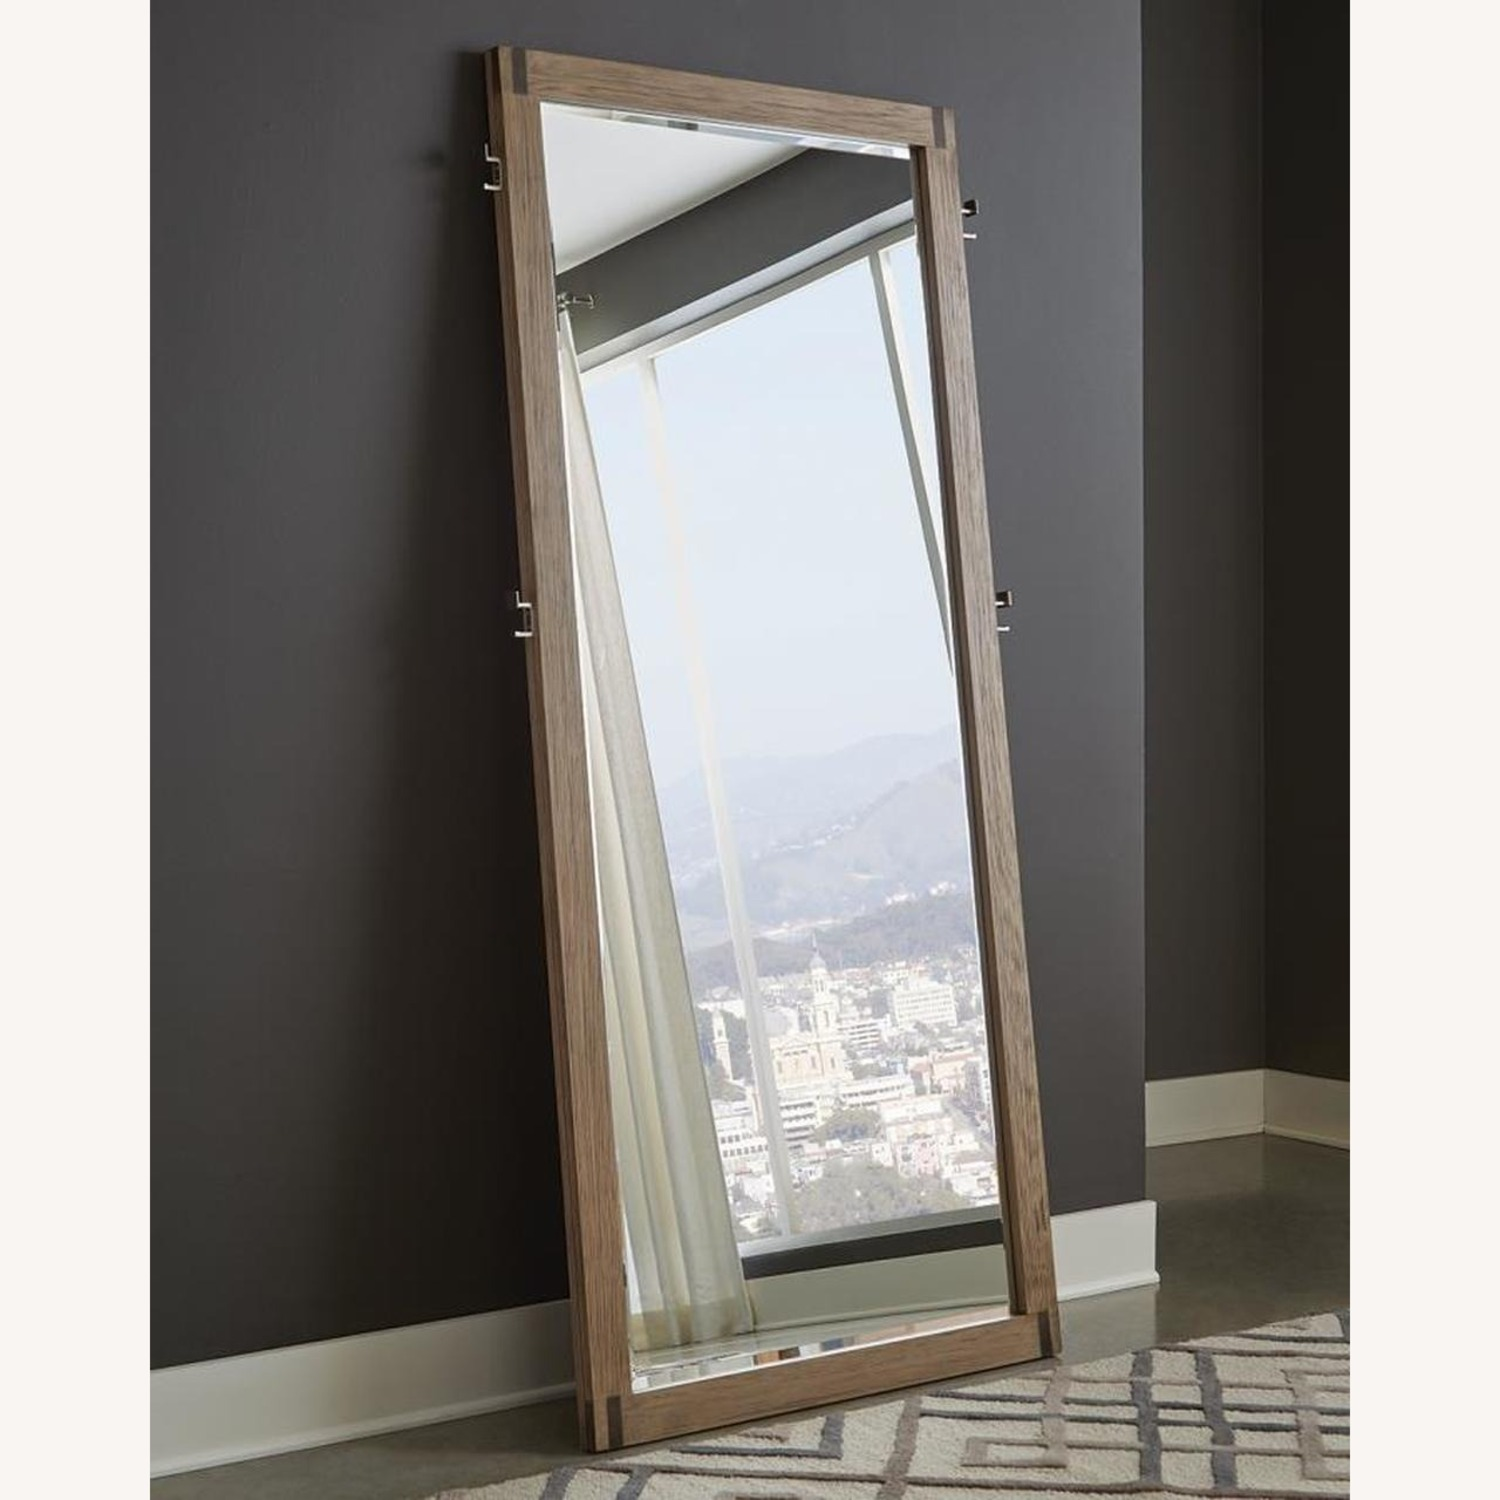 Modern Floor Mirror in Grey Oak Frame W/ Hooks - image-2